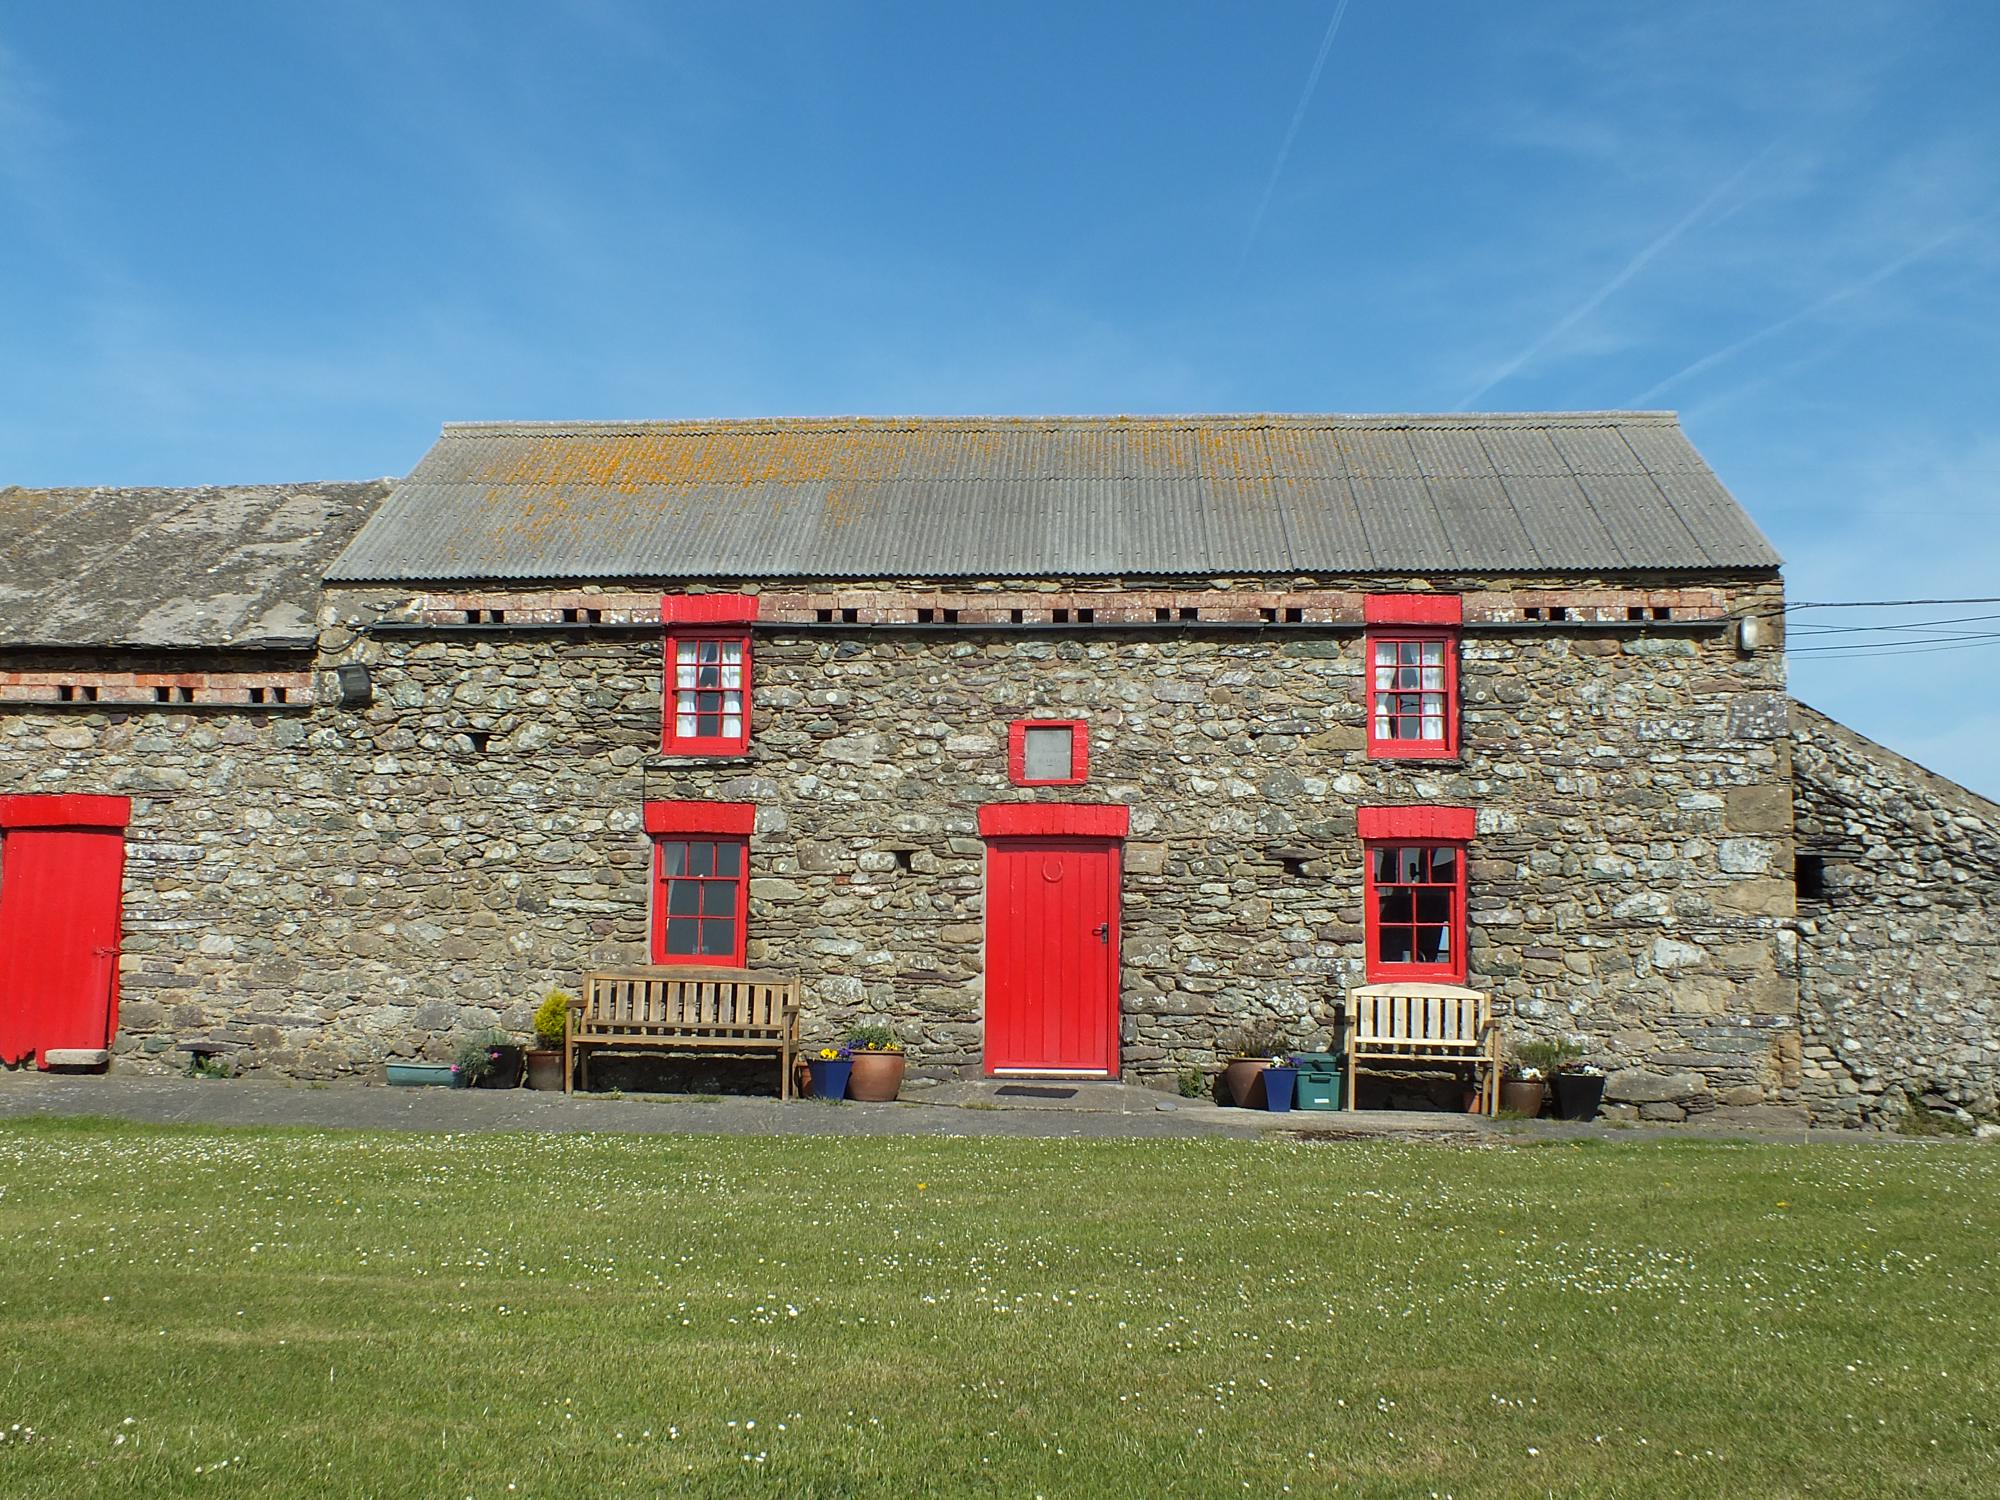 Self-Catering in South Wales holidays at Cool Places